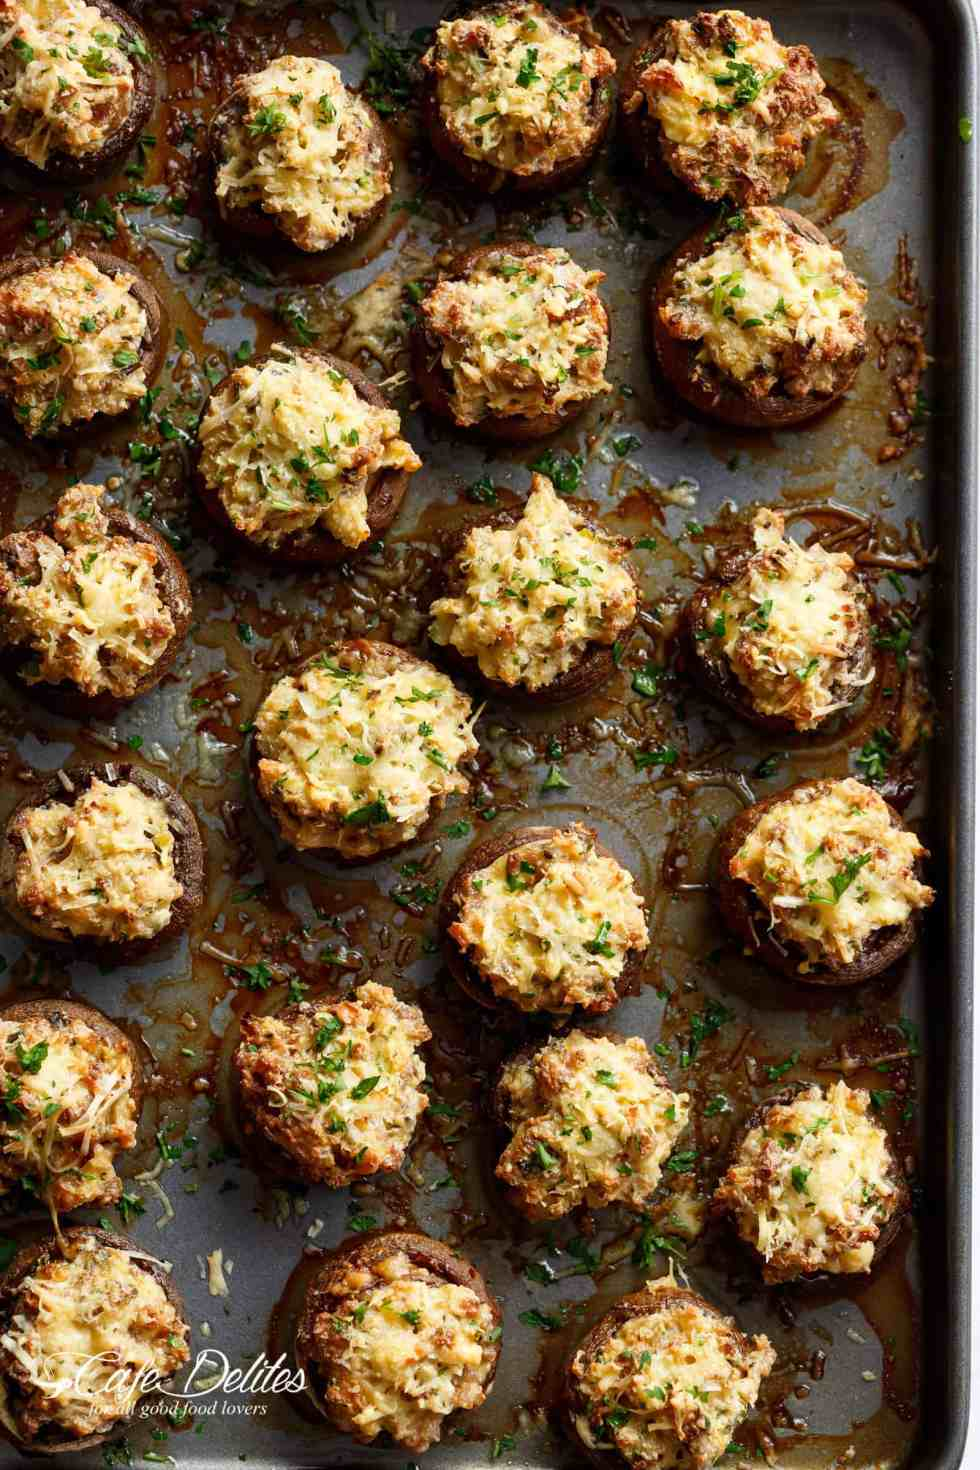 Sausage Cream Cheese Dip Stuffed Mushrooms are juicy and meaty on the outside, while creamy and full of flavour on the inside!   cafedelites.com